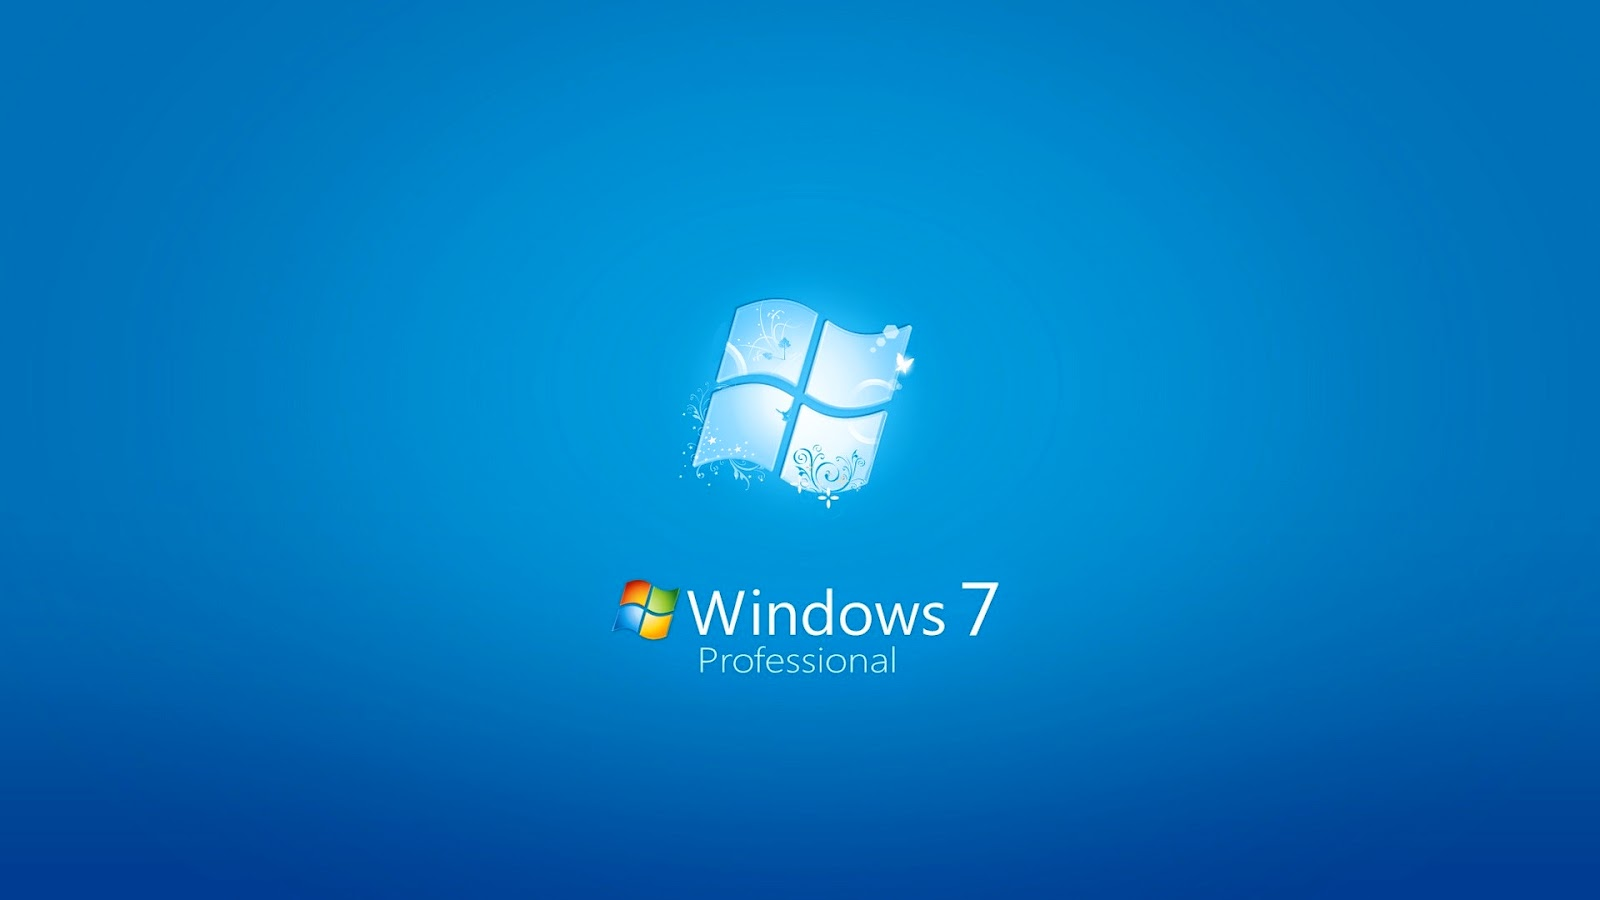 installer Windows 7 sur une virtual machine  Comment installer et activer Windows 7 sur VMware Workstation 10 8a91d3b47df7d0fb4ff63d8e16a569be large